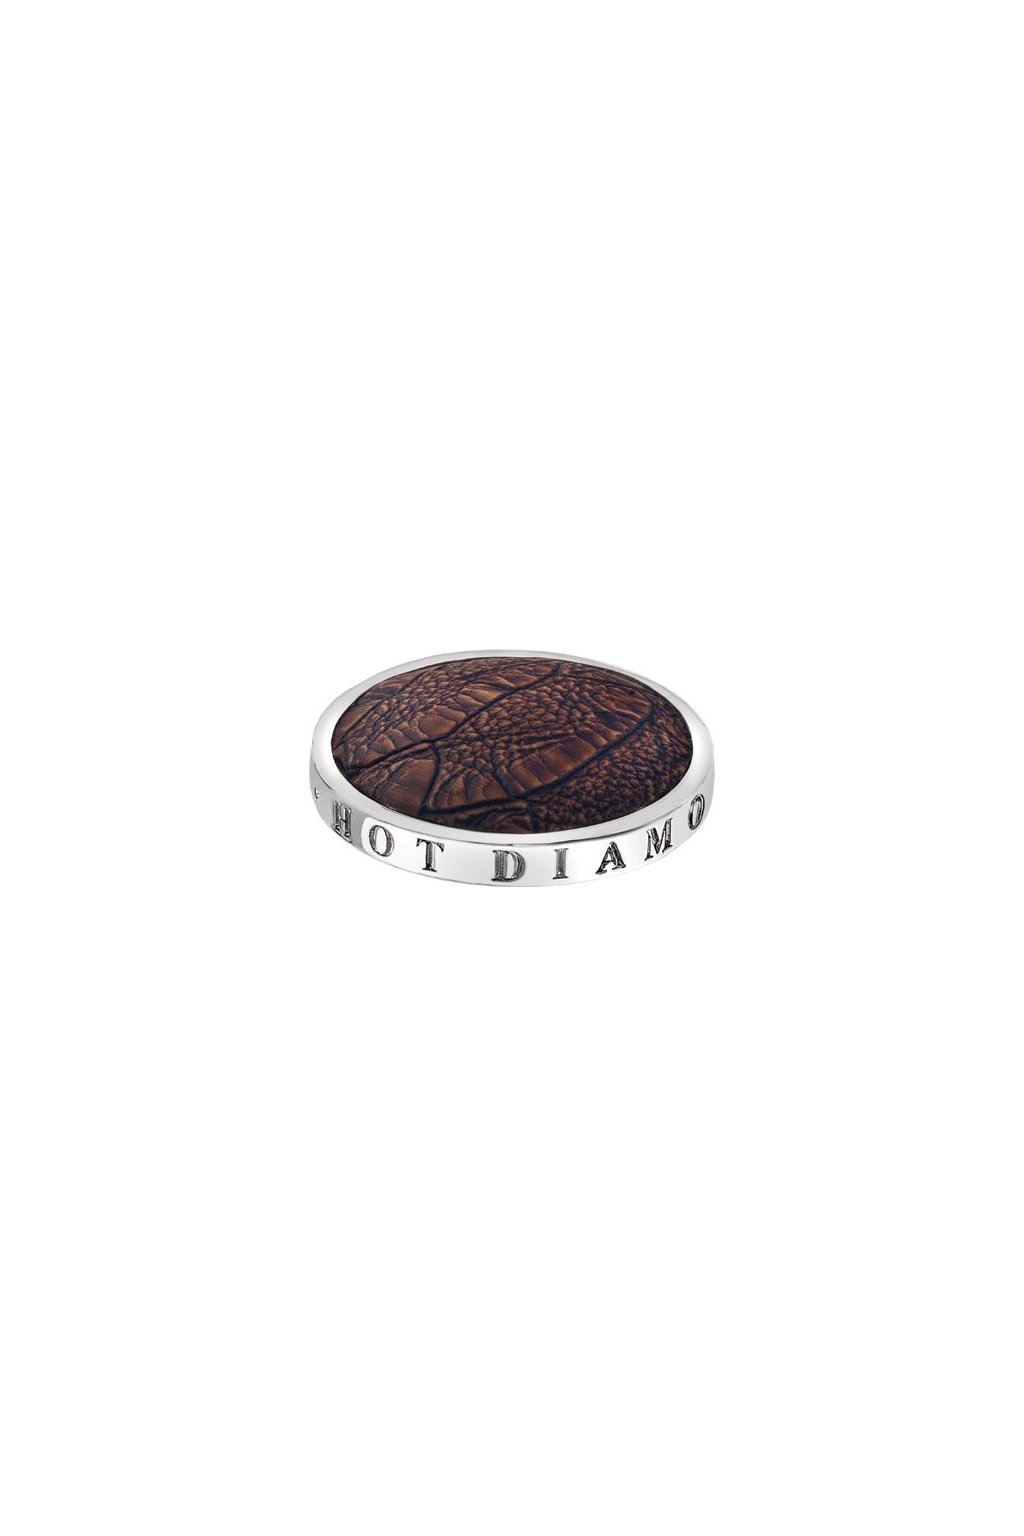 Přívěsek Hot Diamonds Emozioni Faux Crocodile Dark Brown Coin